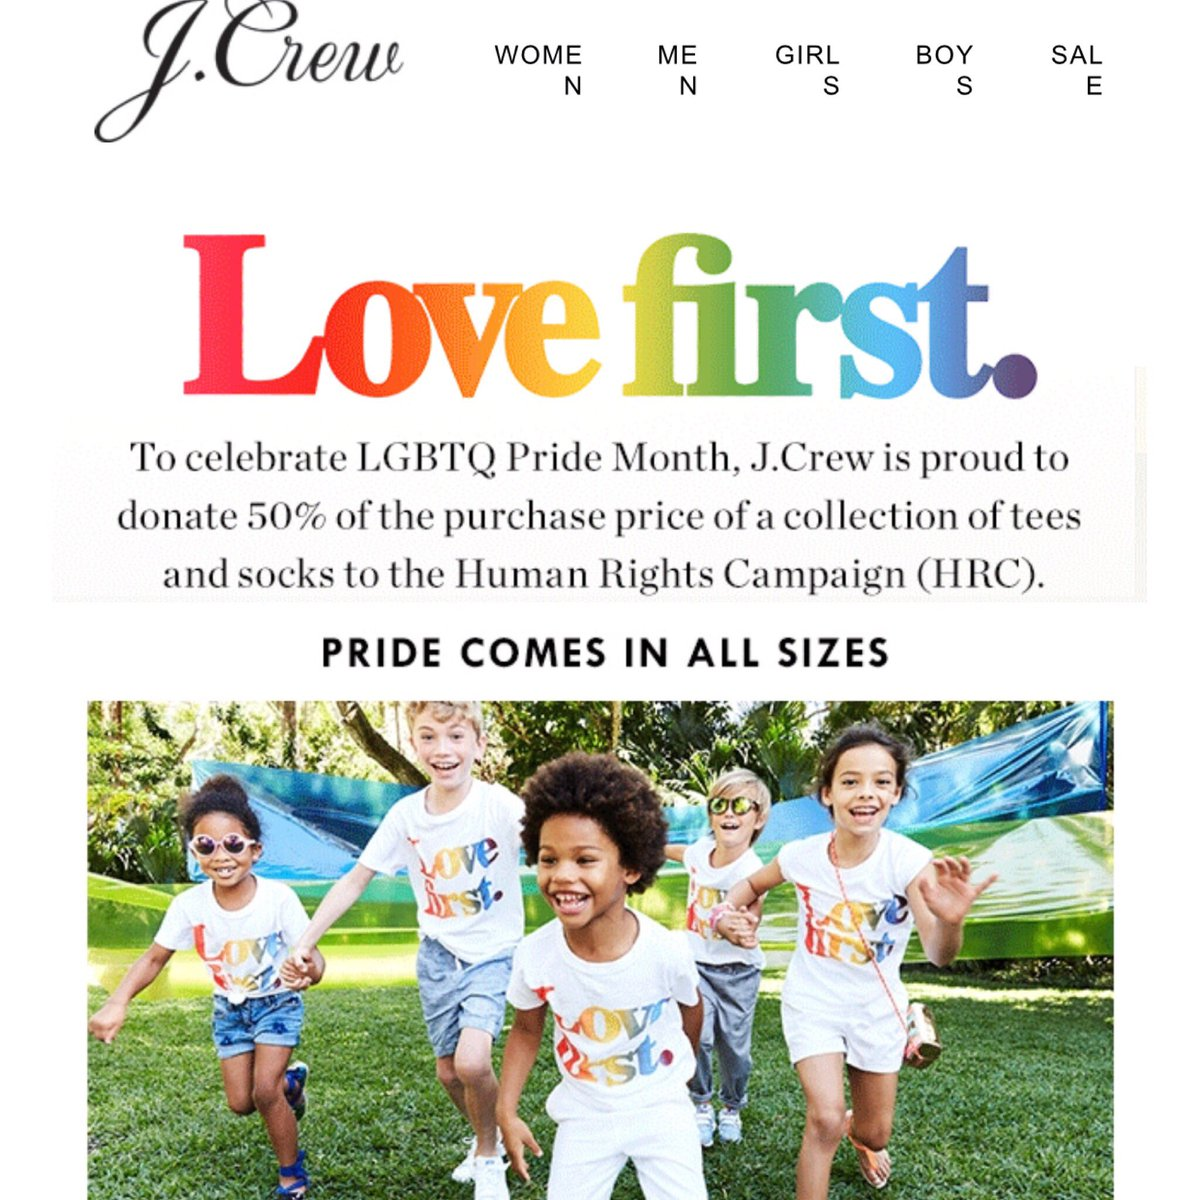 J. Crew Markets Gay Pride Clothing Line to Children